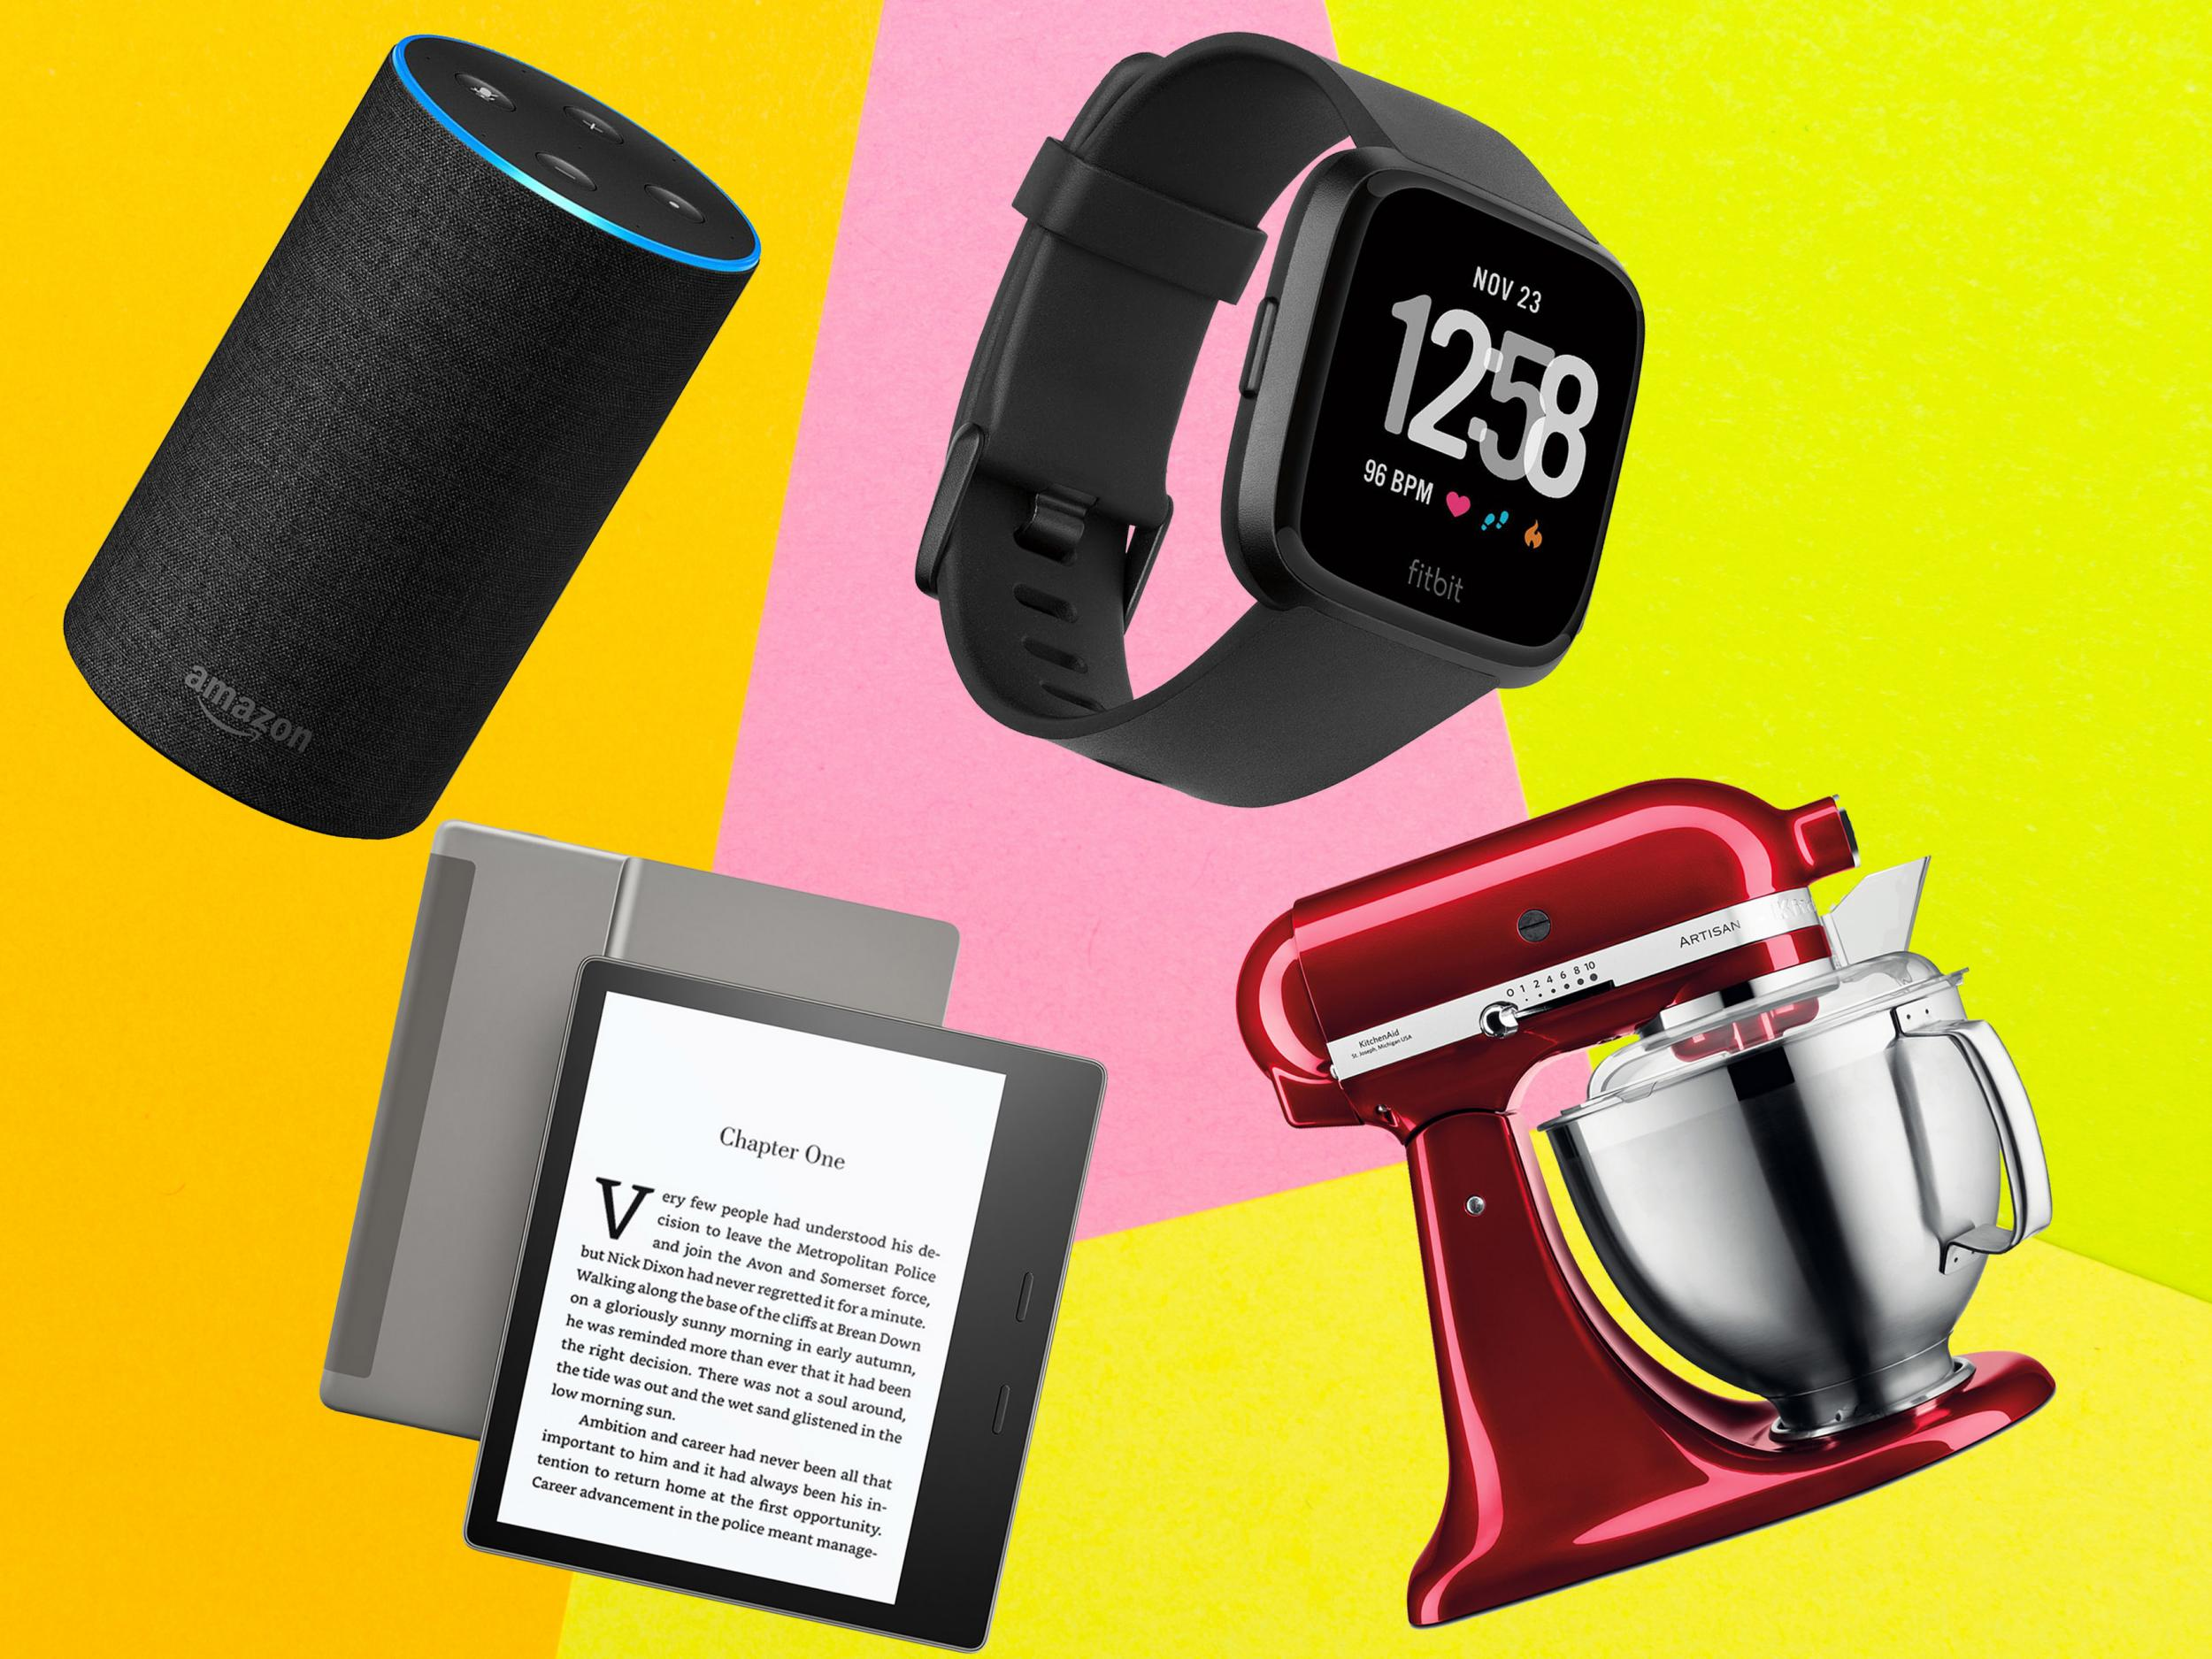 1f2dd4fb1 Amazon Prime Day 2019: When is it and how can I get the best deals?